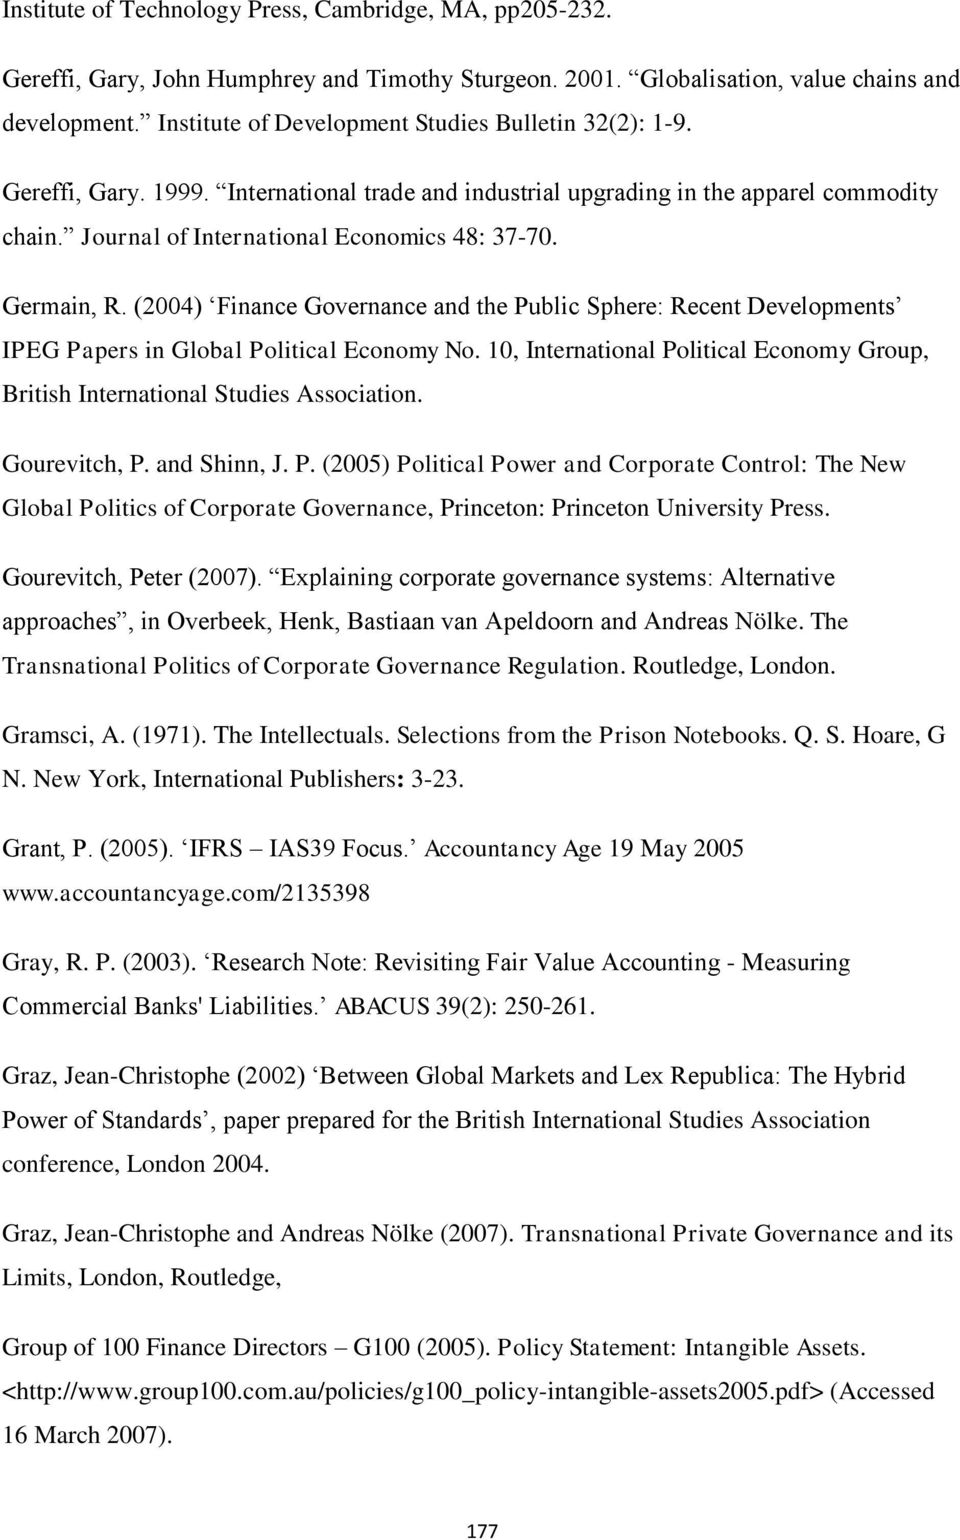 Germain, R. (2004) Finance Governance and the Public Sphere: Recent Developments IPEG Papers in Global Political Economy No.